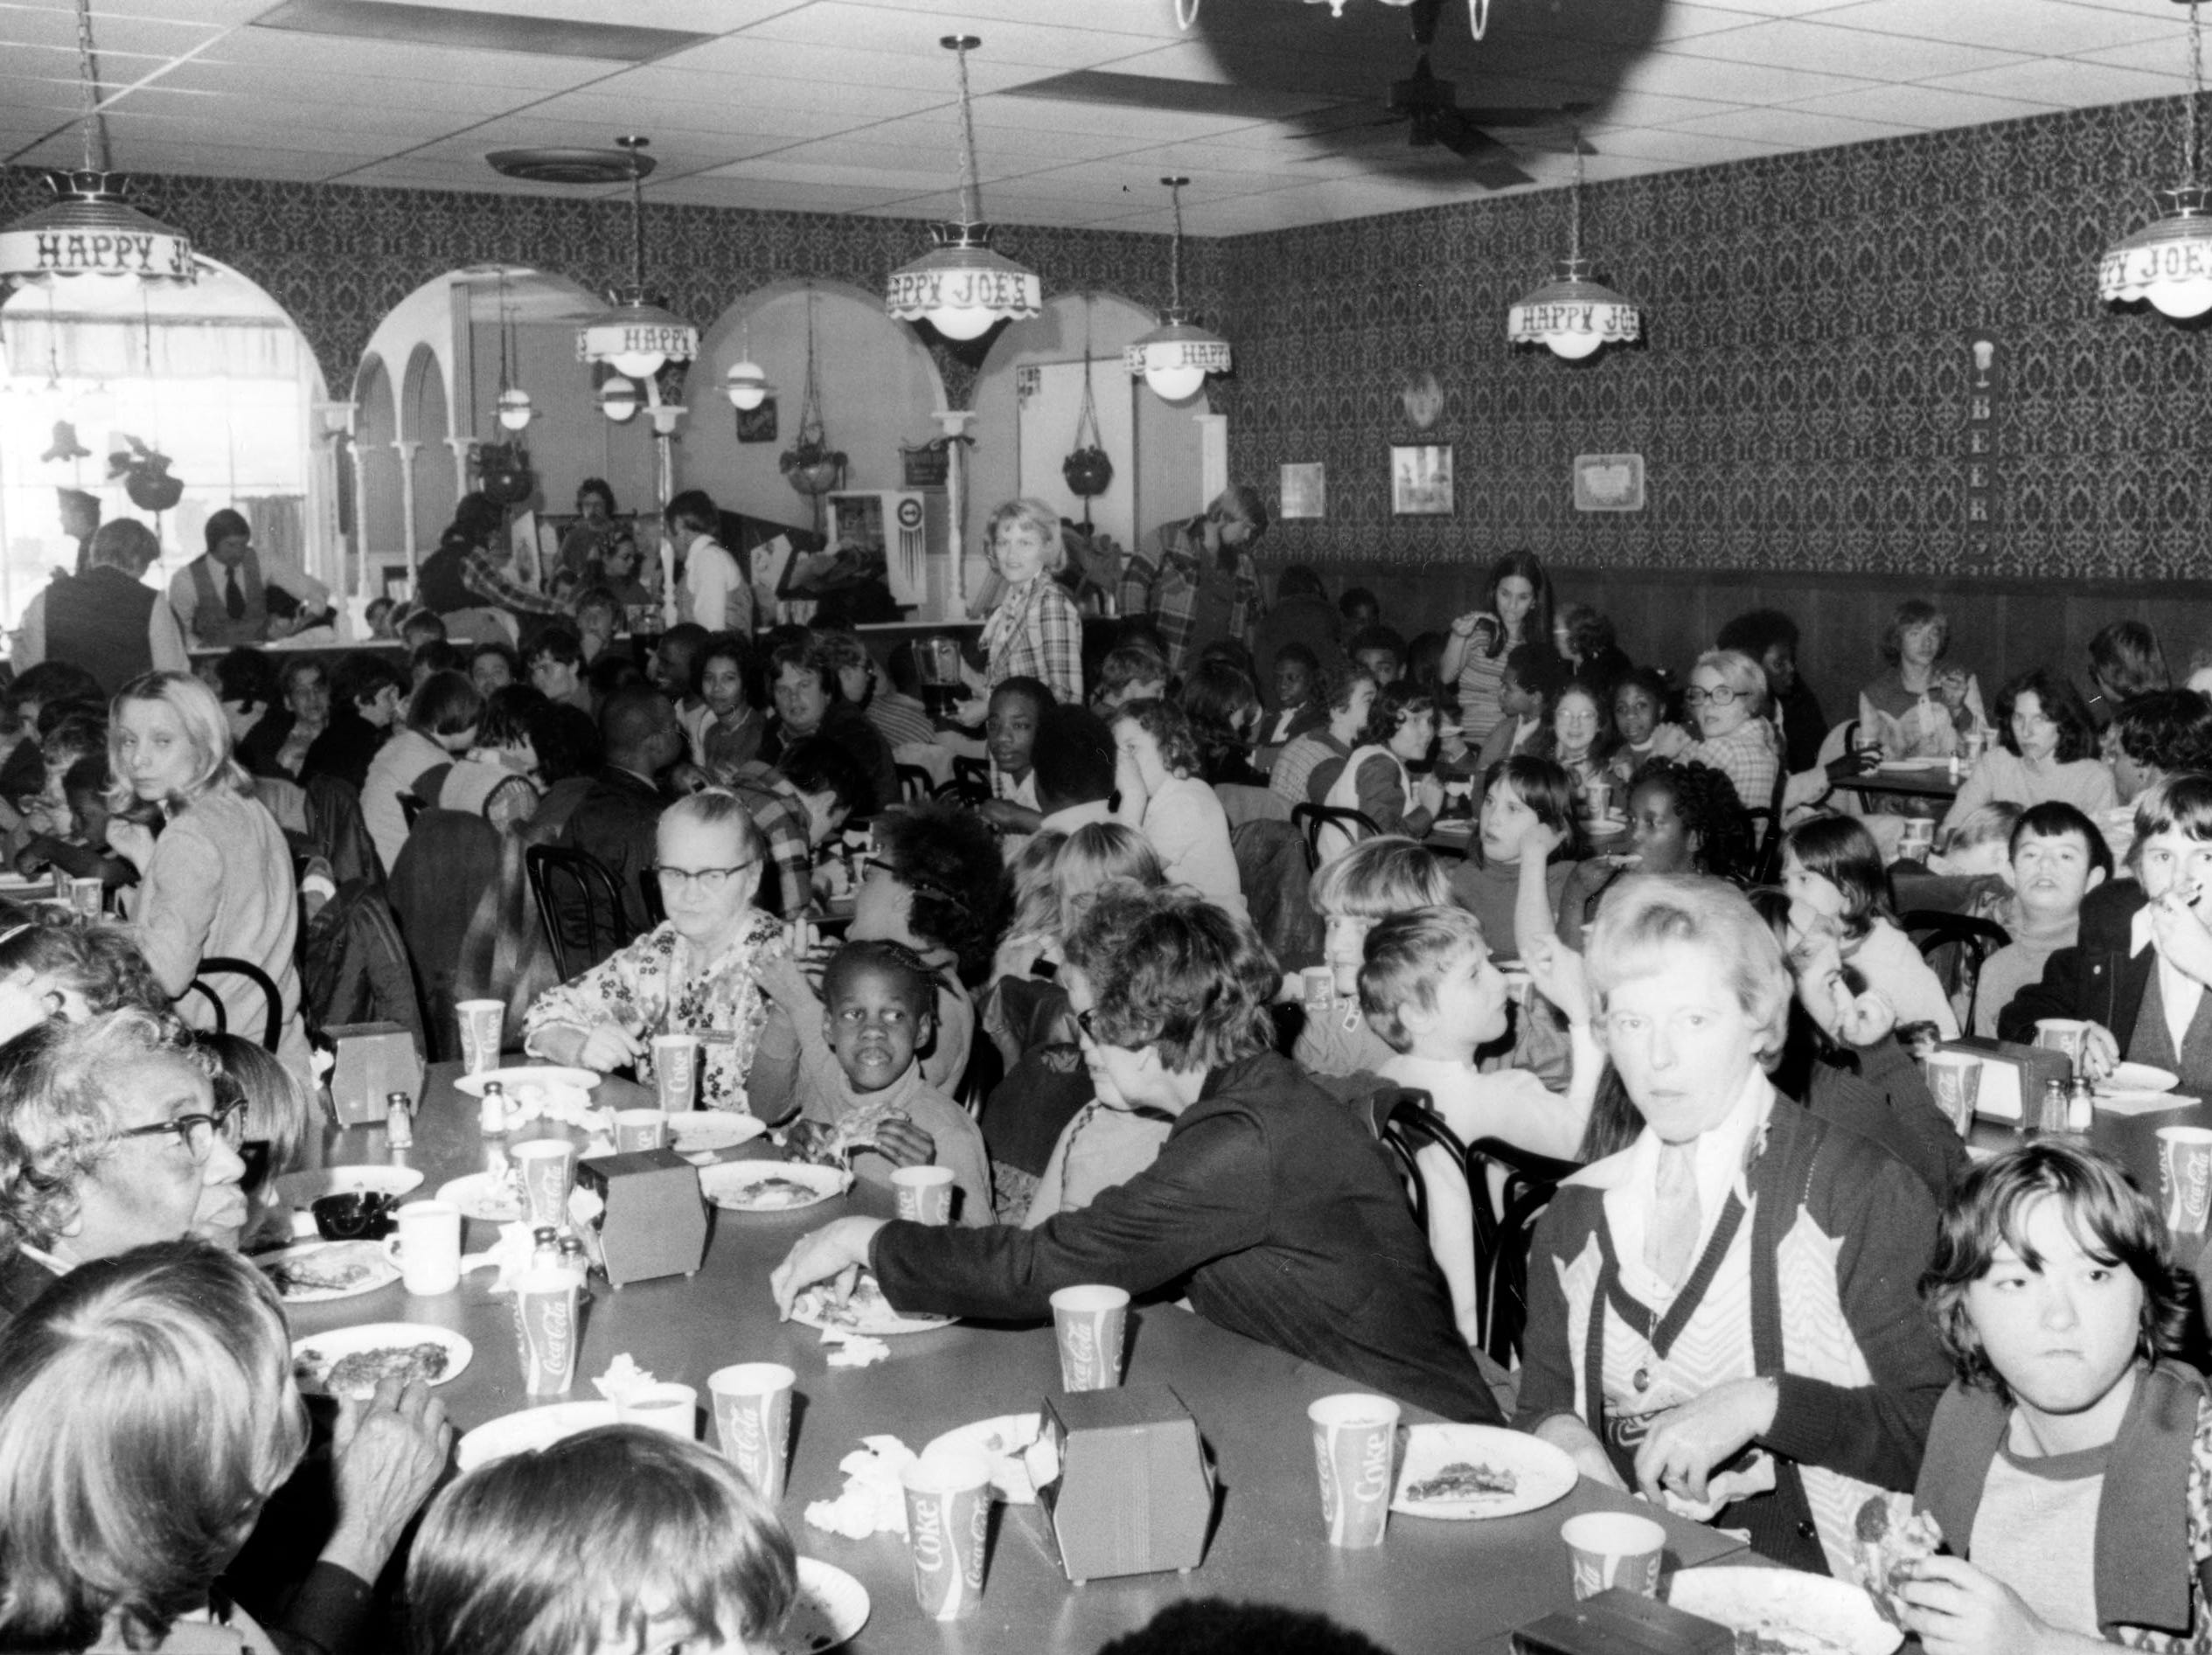 About 300 children from special education centers were treated to free pizza, ice cream, and soft drinks at Happy Joe's Old Fashioned Pizza and Ice Cream Parlor at 2907 Tazwell Pike in December 1976.